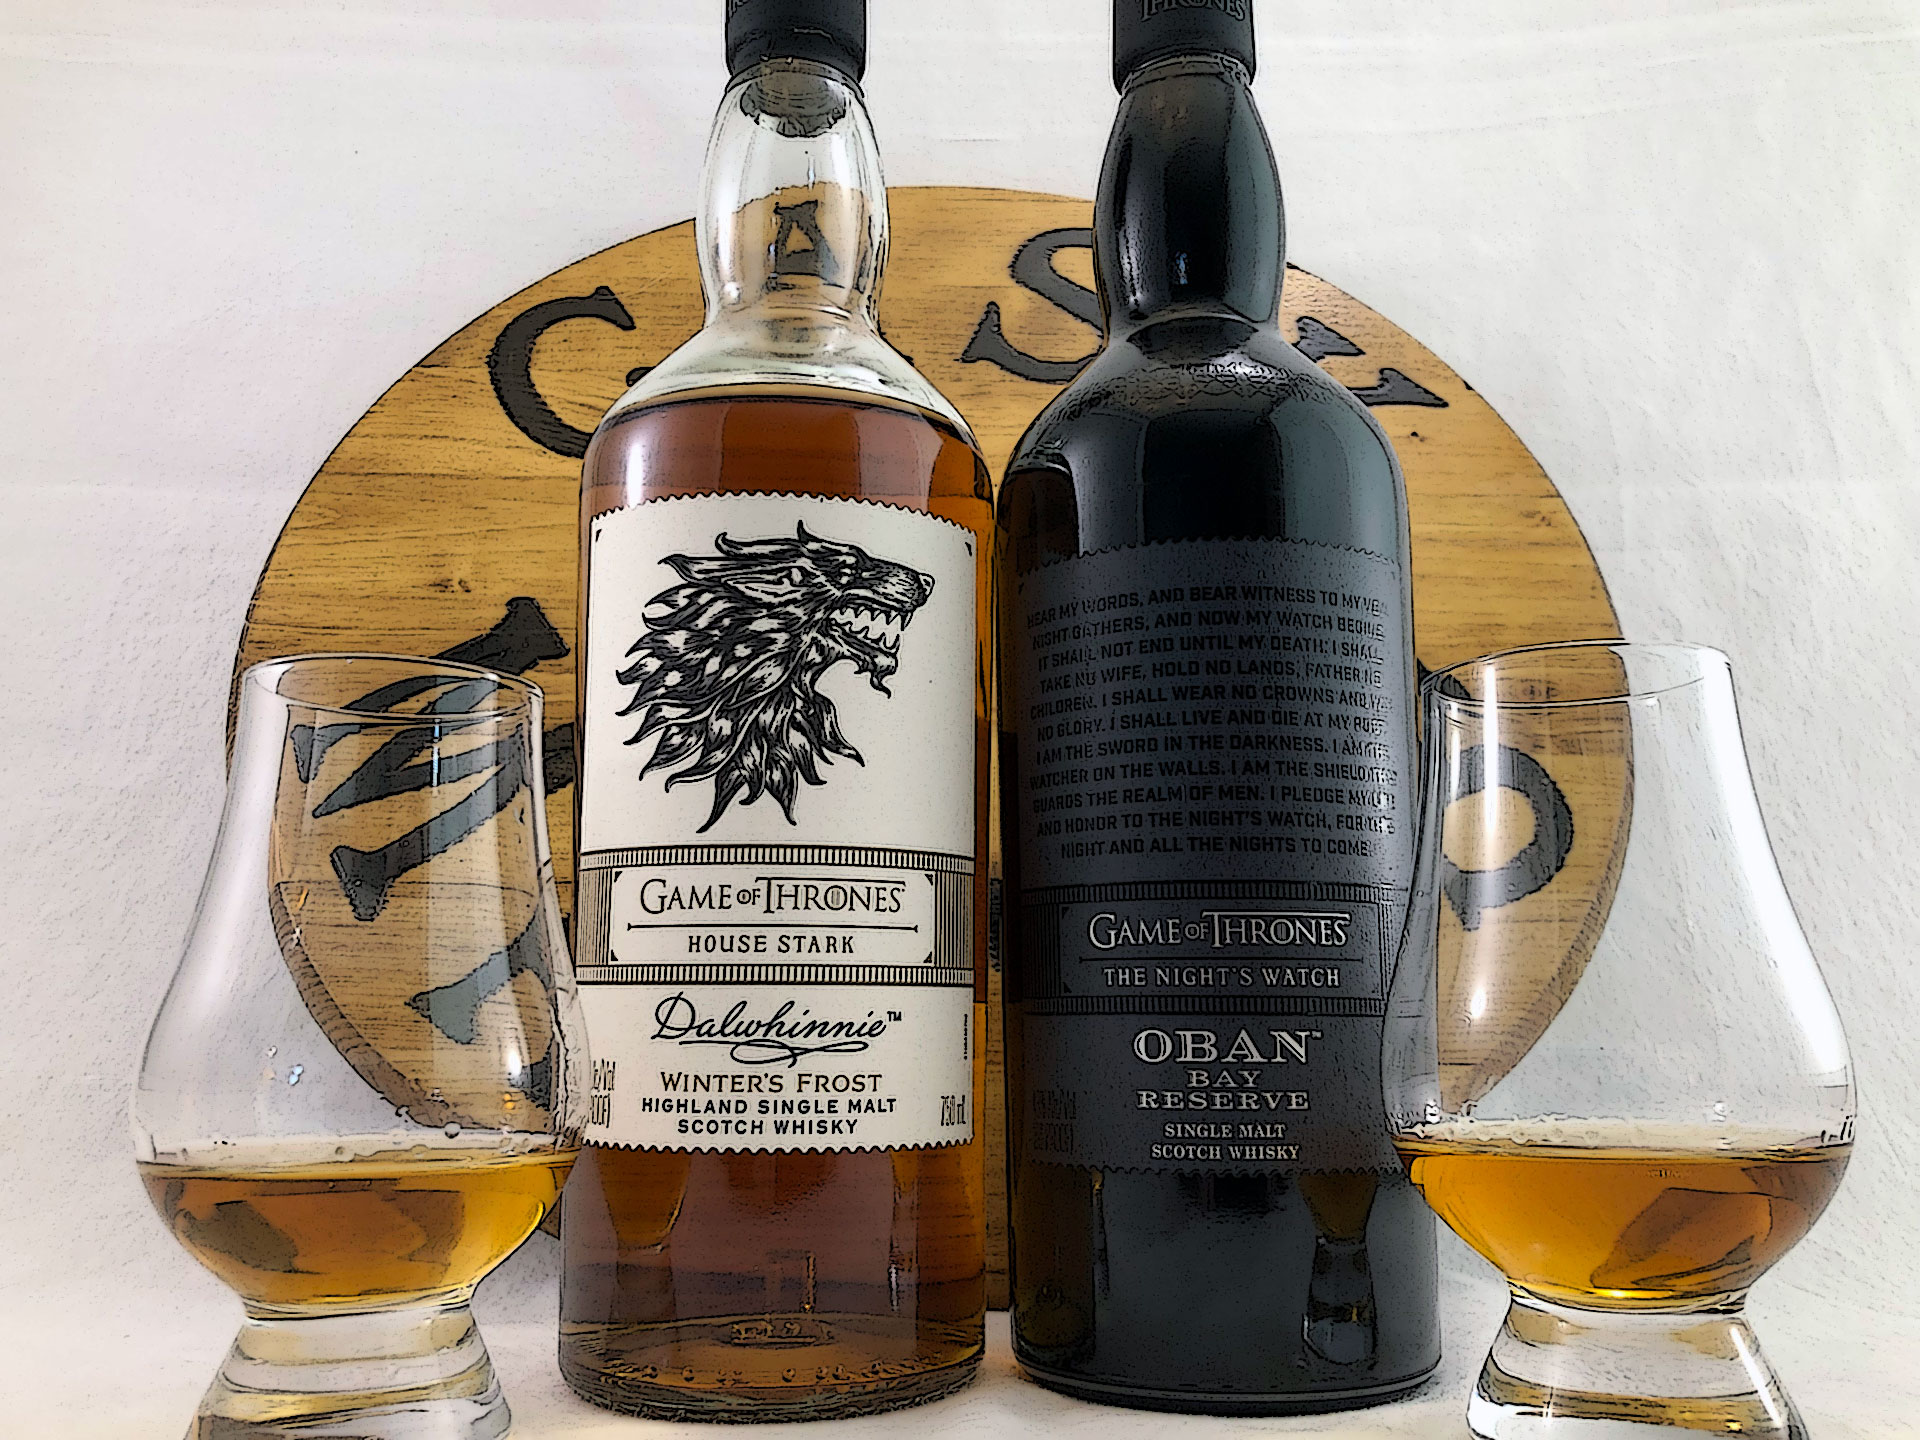 Game of Thrones - House Stark & Night's Watch Scotch